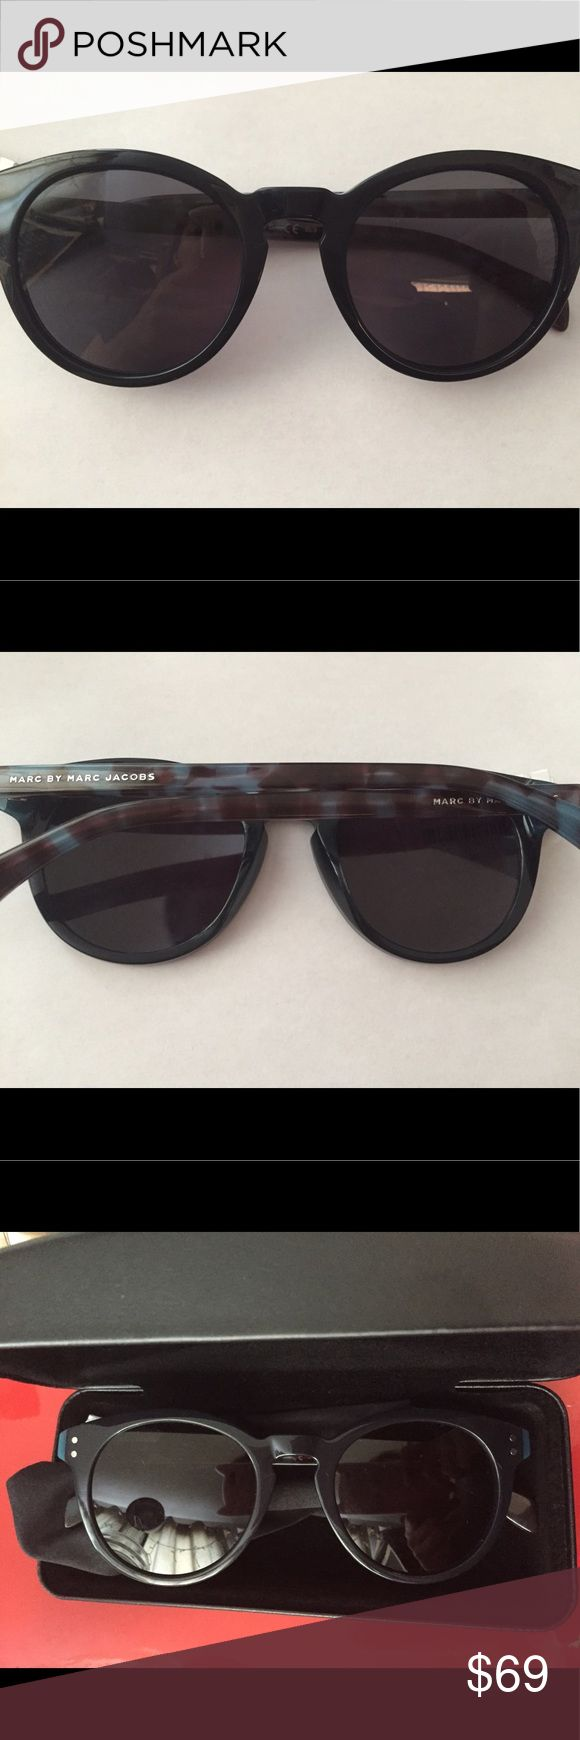 Marc Jacobs Round Women's Sunglasses Brand new Marc Jacobs round navy sunglasses. Structured and sophisticated, these modern round shaped glasses add a polished look to any outfit. A light material and construction allow for a great level of comfort and everyday wear.  Features •Double j logo on inner side of temple tips  It doesn't have its original case but I will send it with a different case. Marc Jacobs Accessories Sunglasses